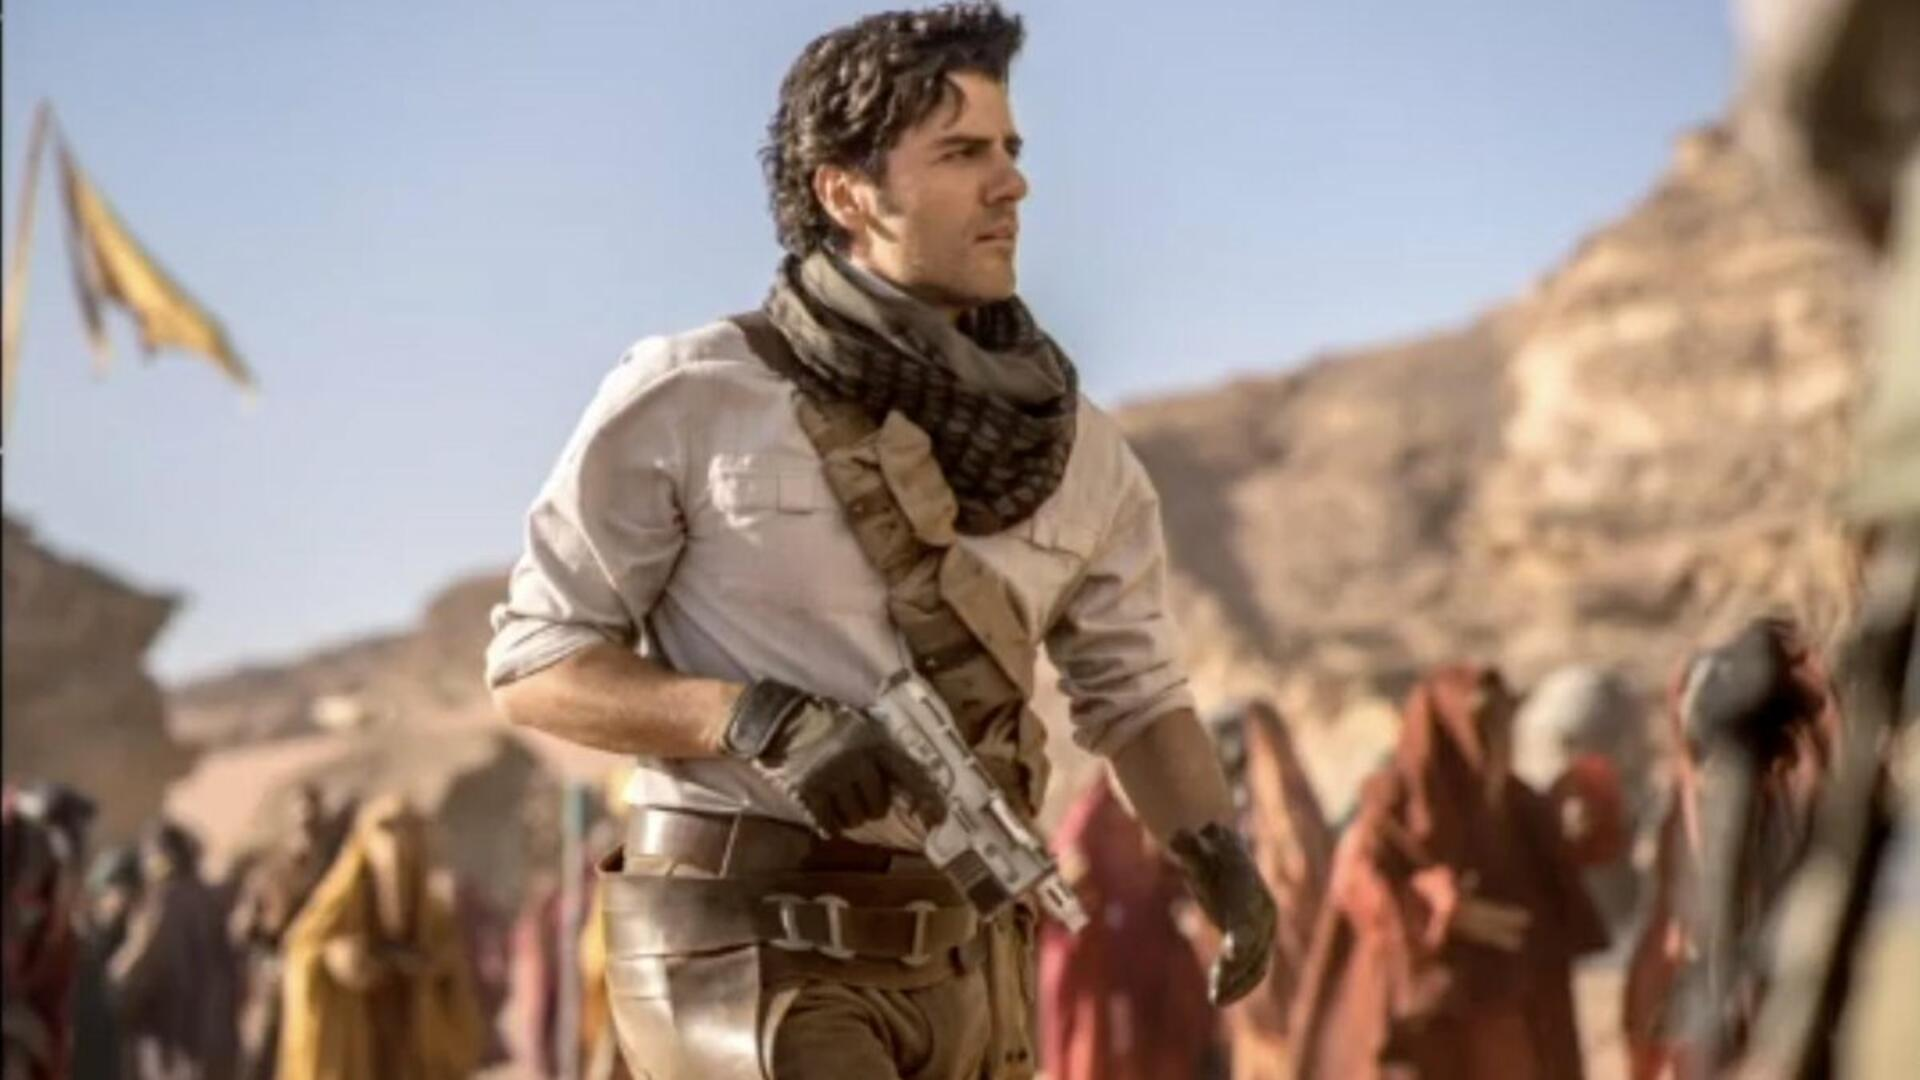 Poe Dameron in Star Wars: Episode 9 Looks Just Like Nathan Drake